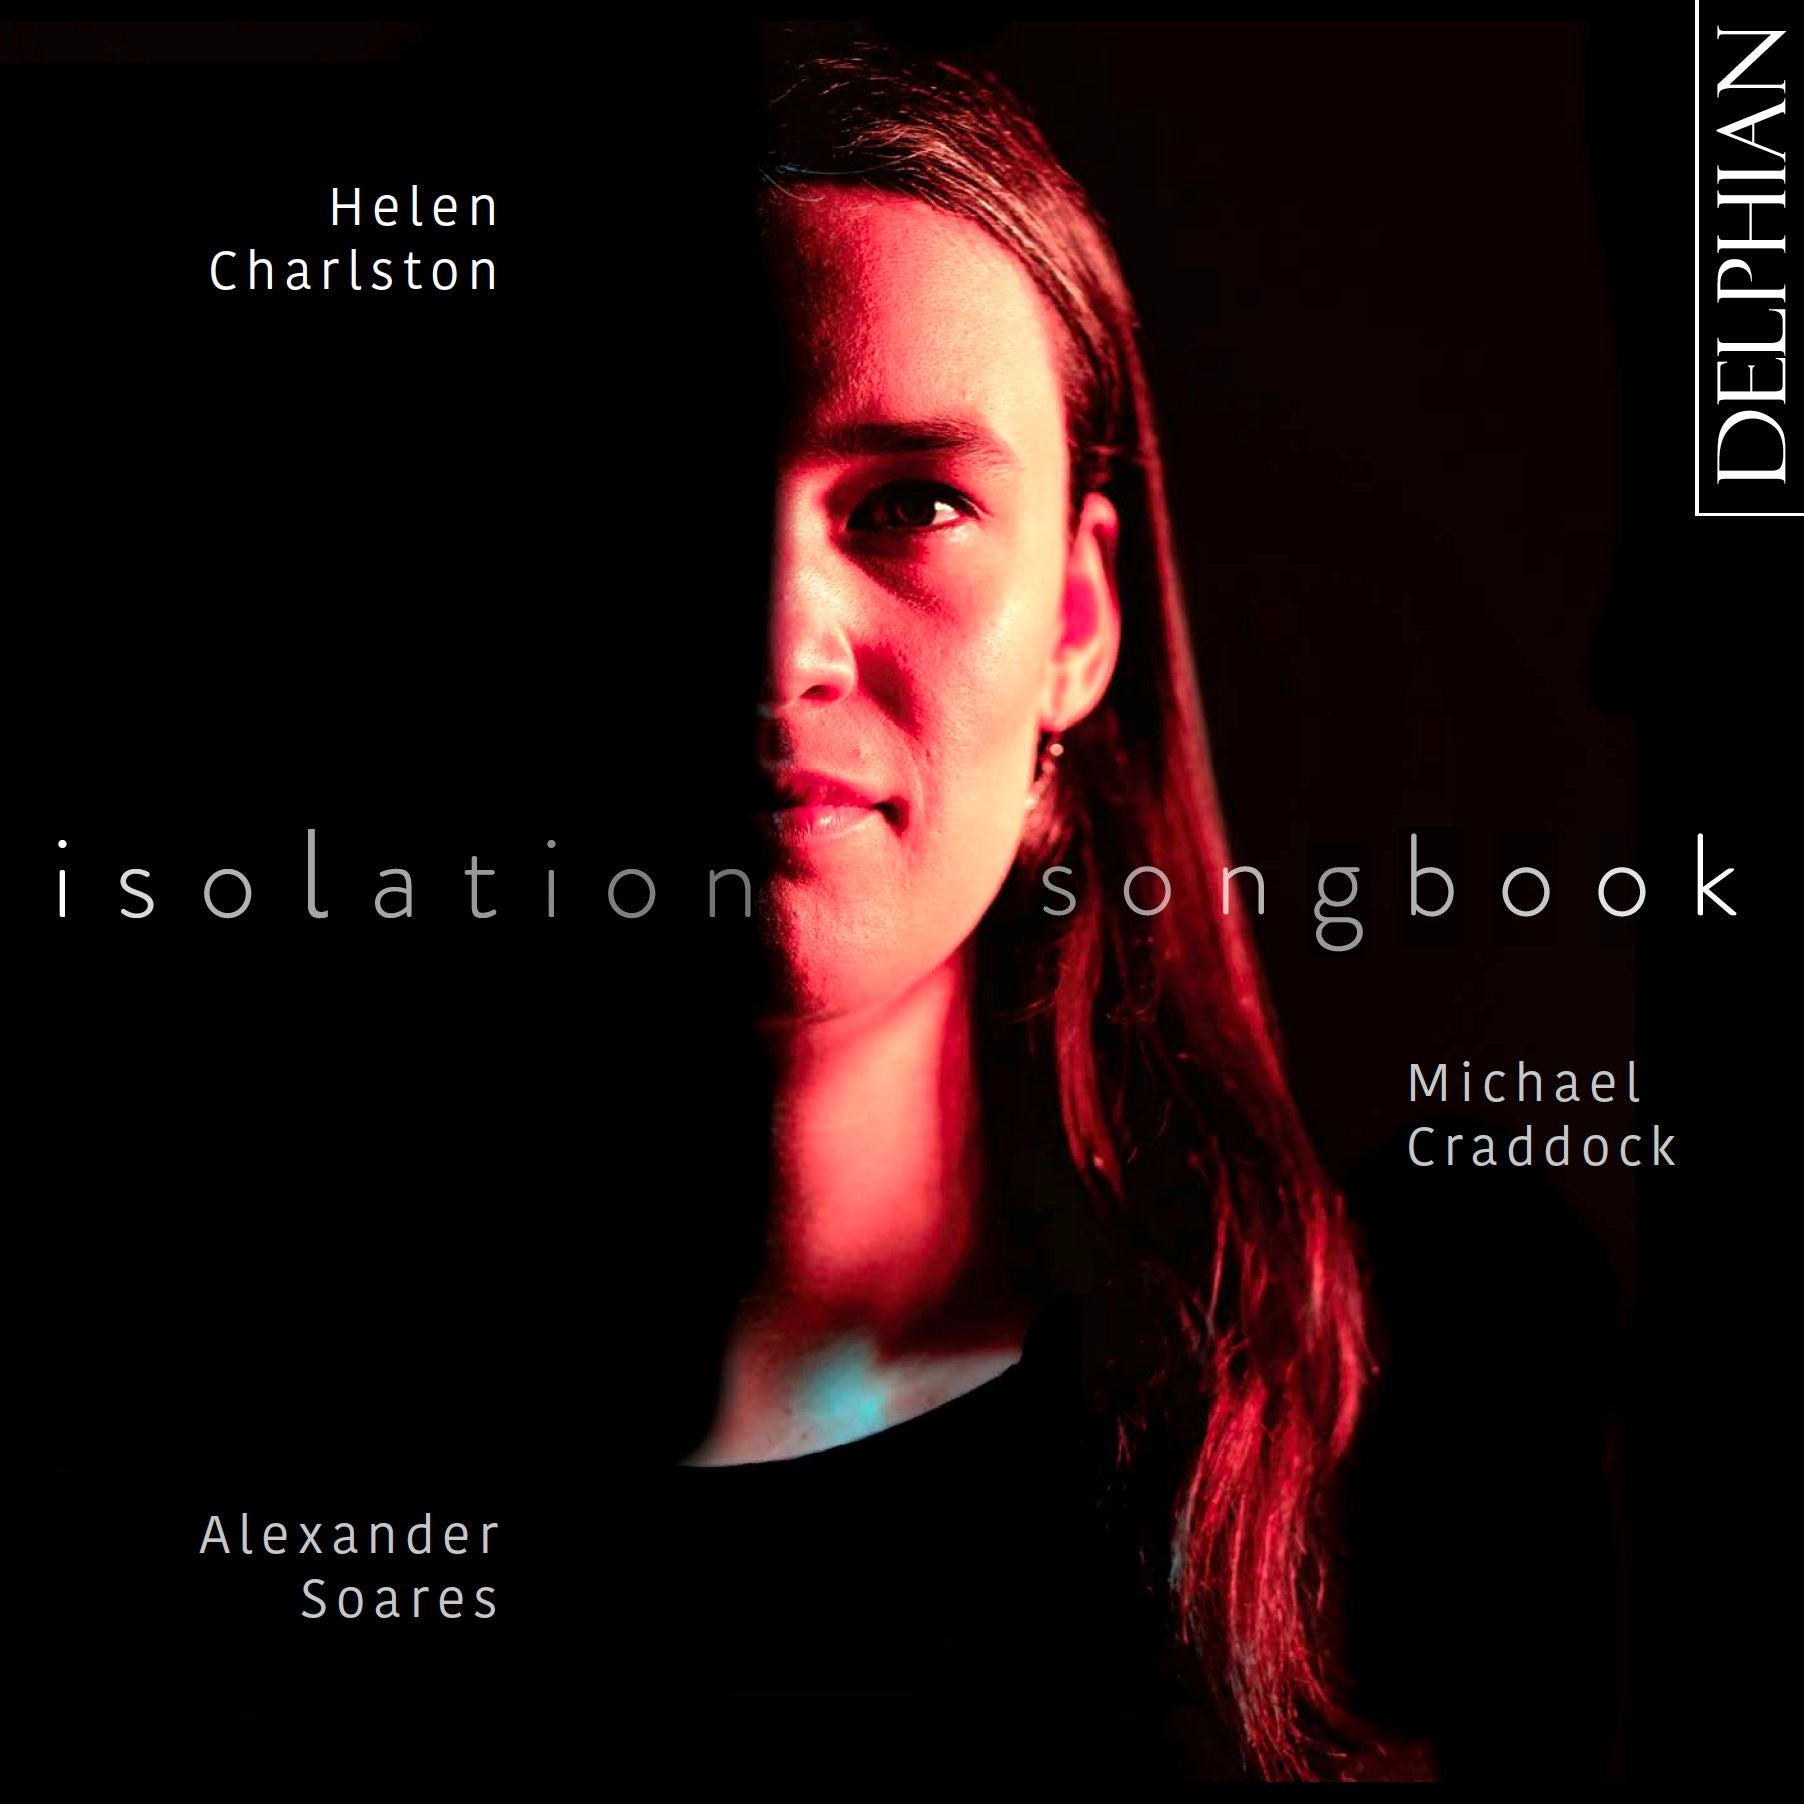 Isolation Songbook CD Delphian Records